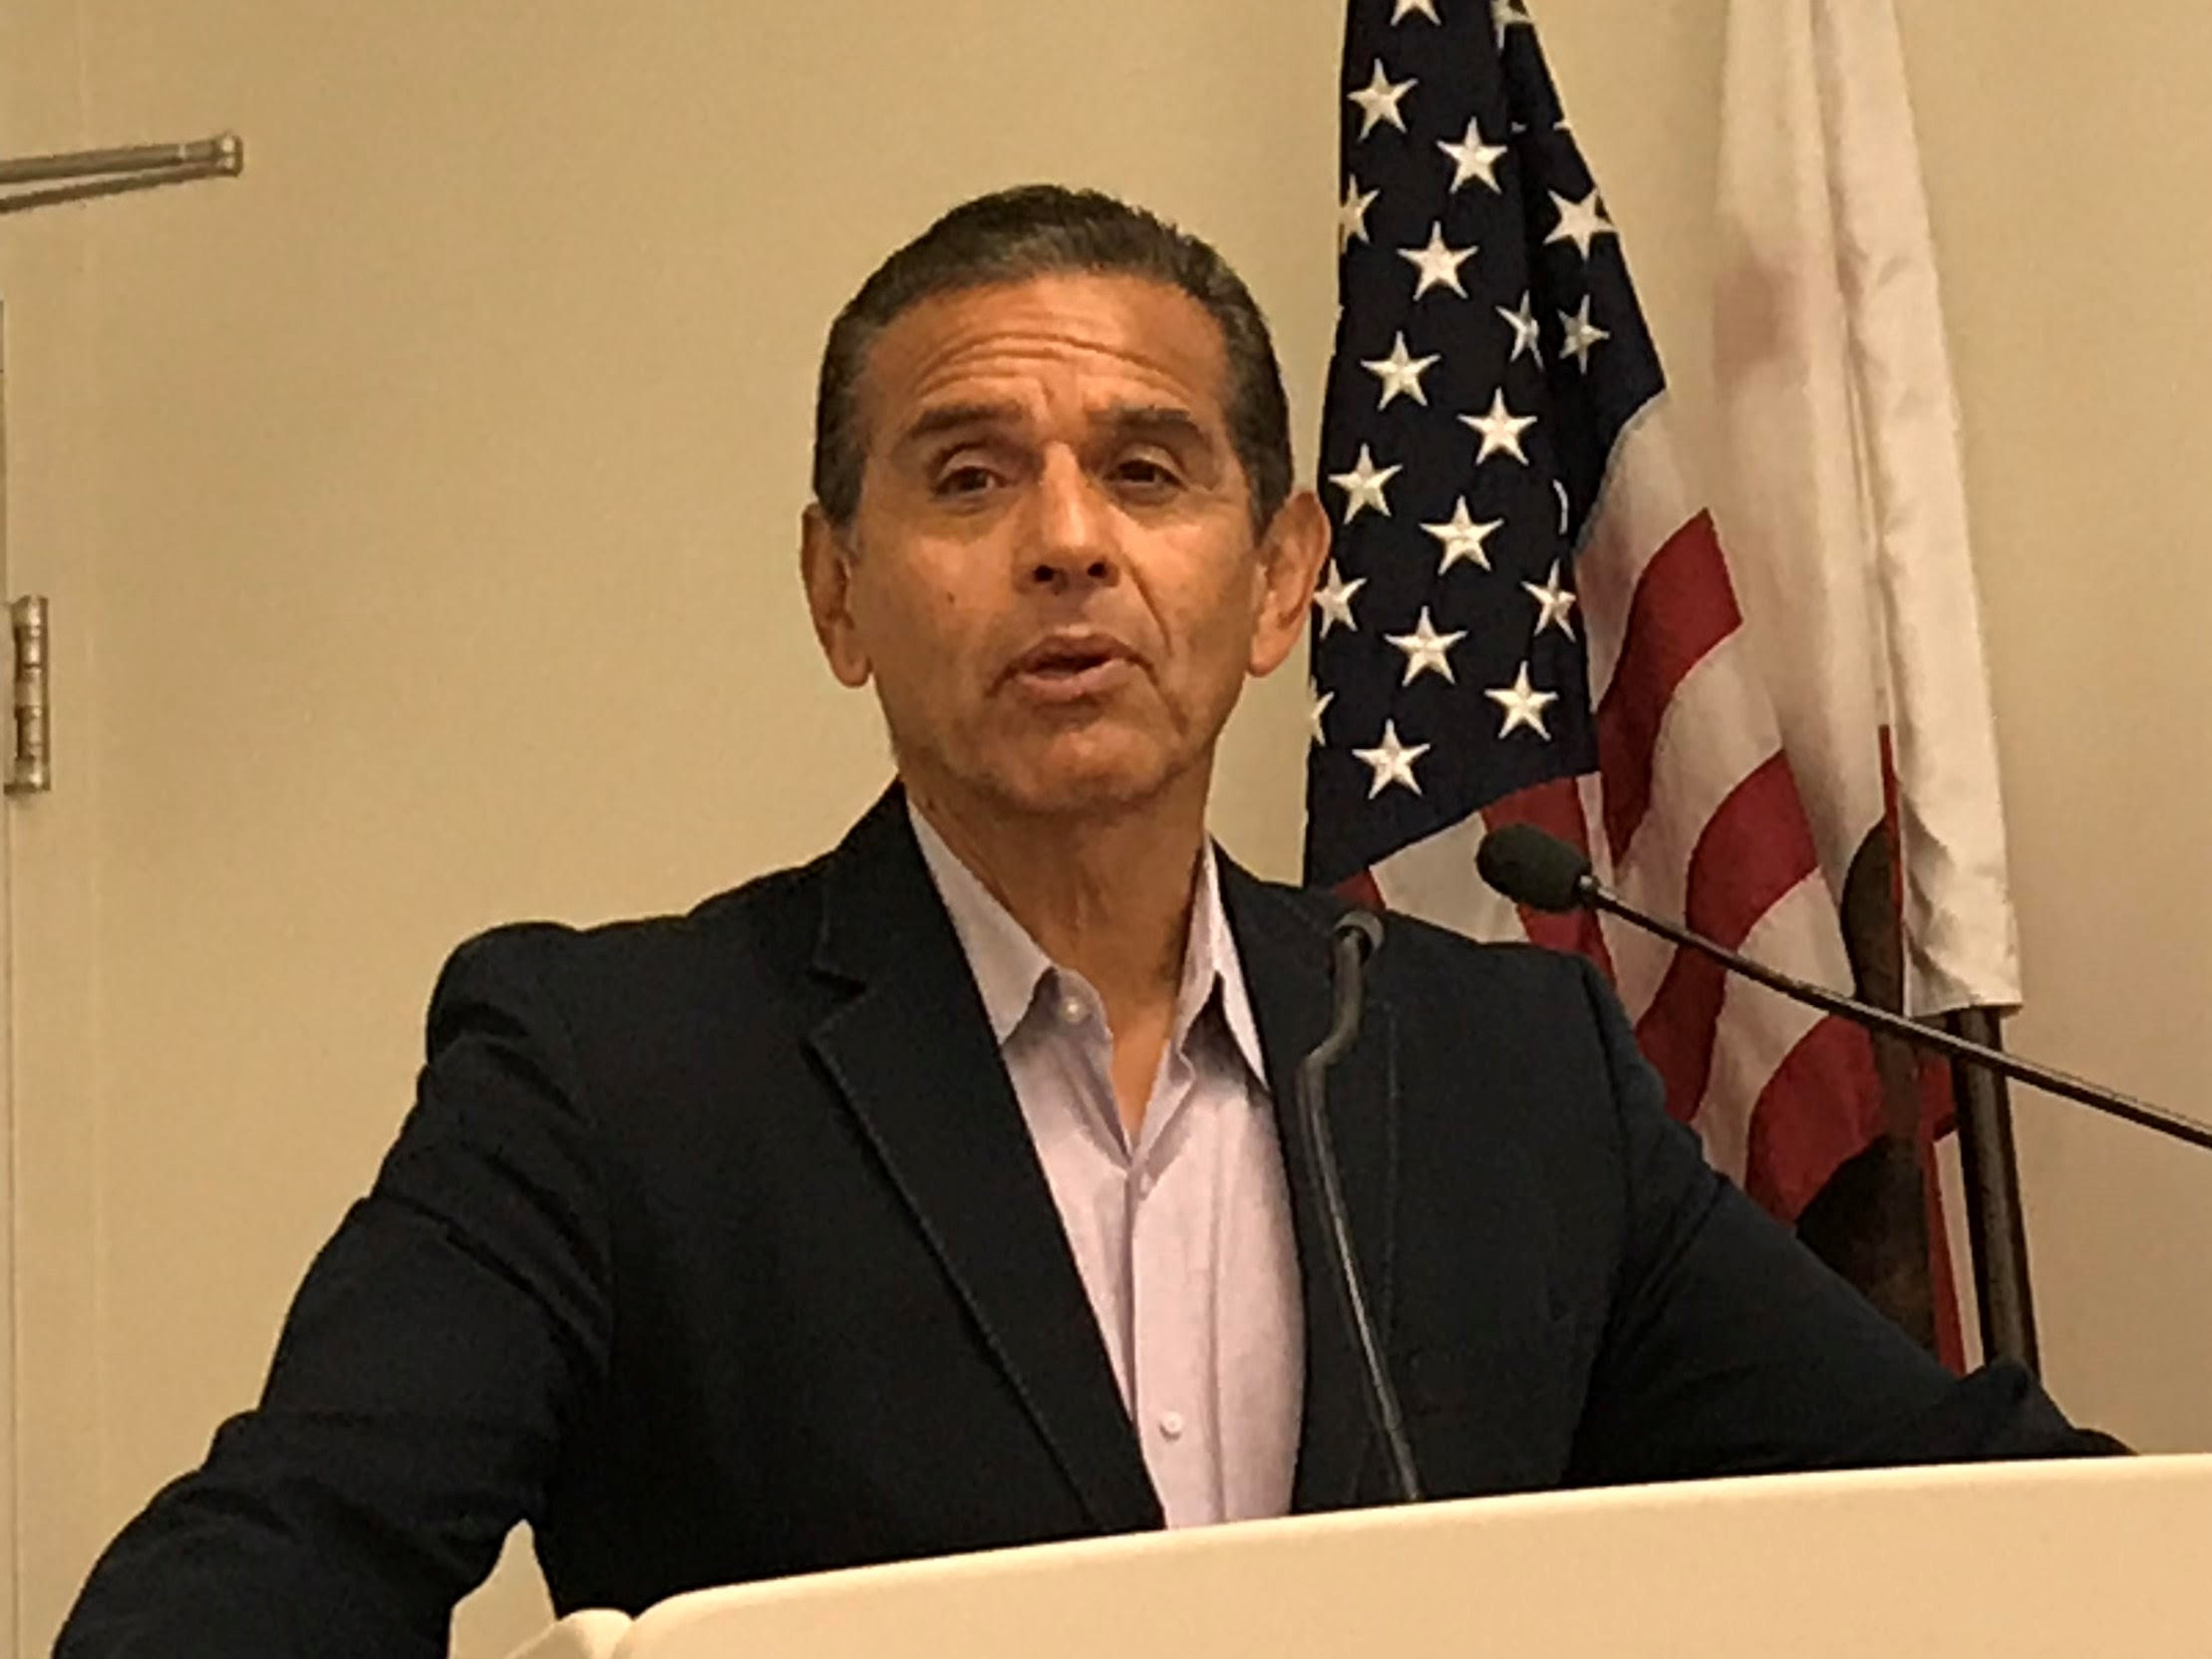 villaraigosa_meeting2.jpg